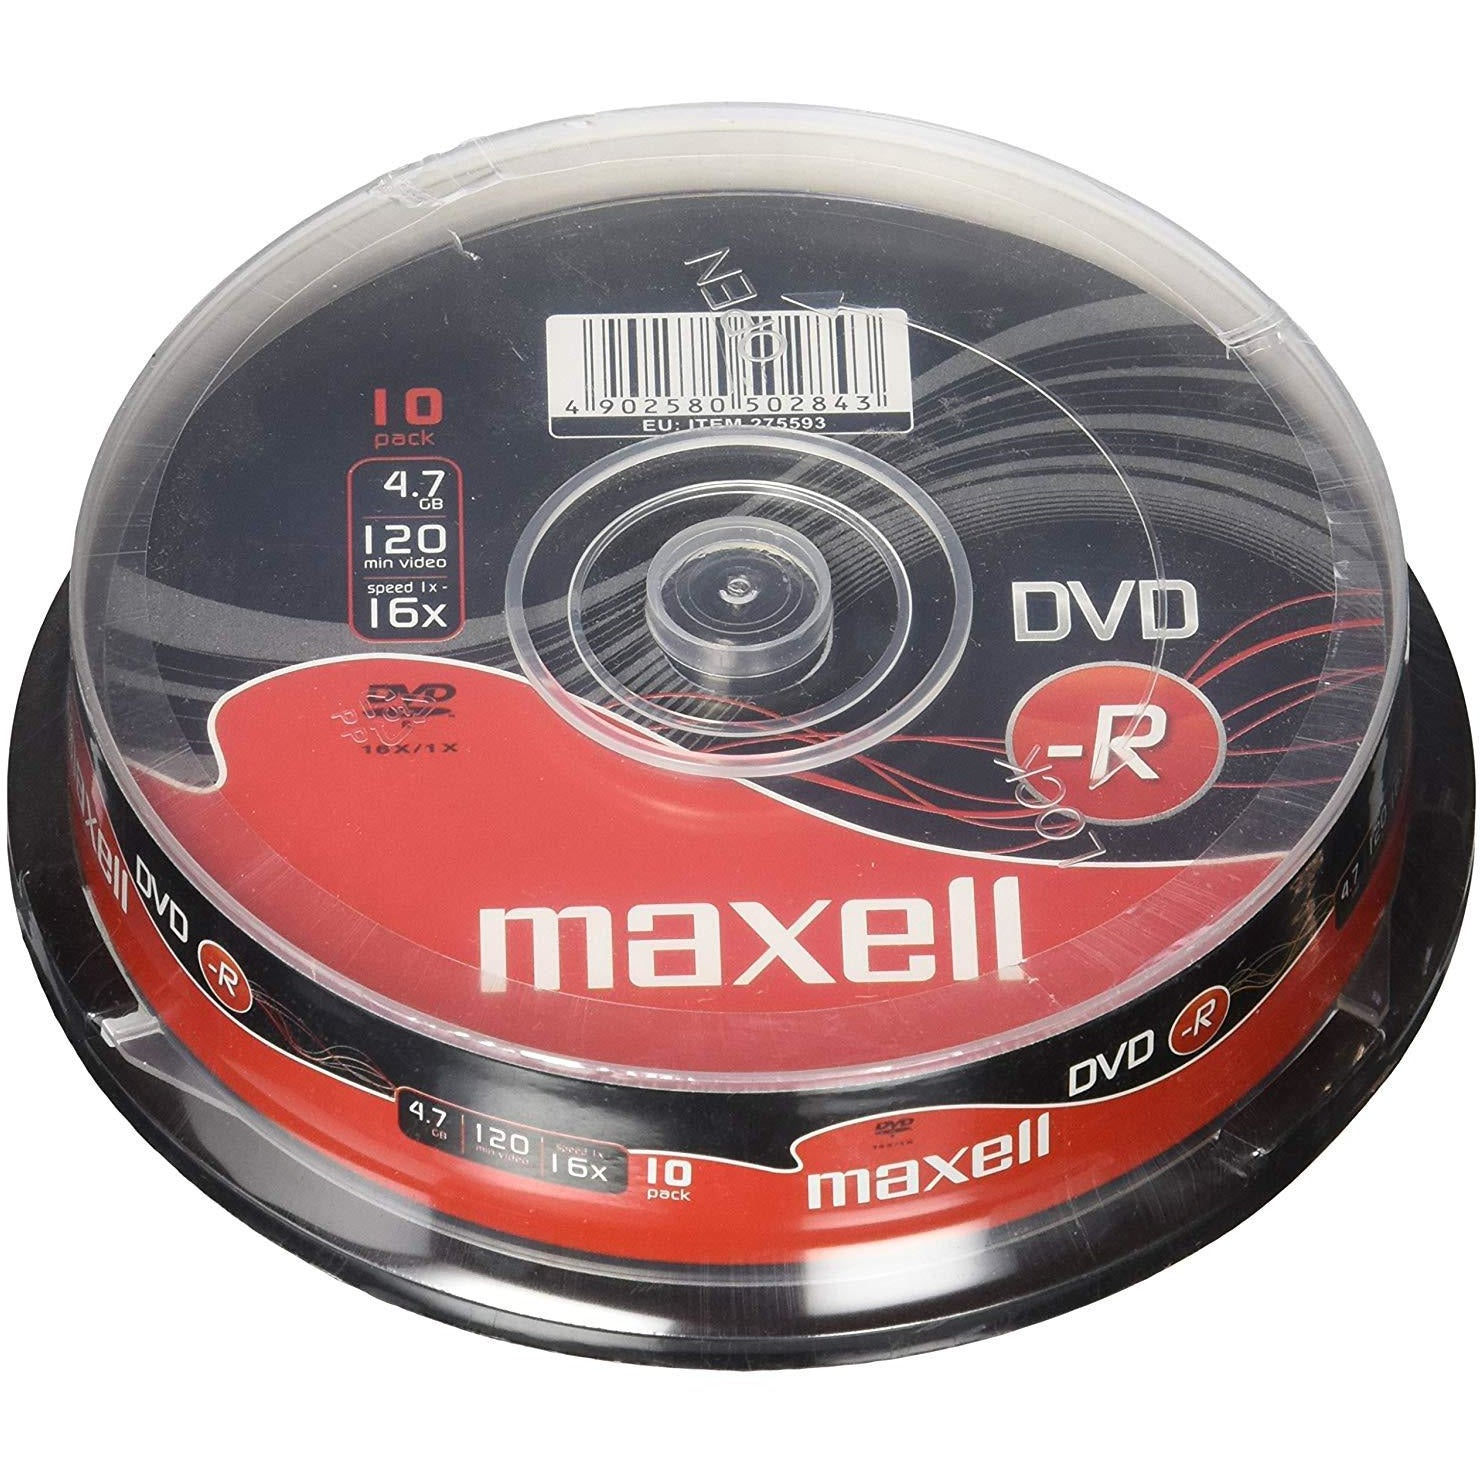 DVD Minus R 10pc Spindle 16X [Accessories]